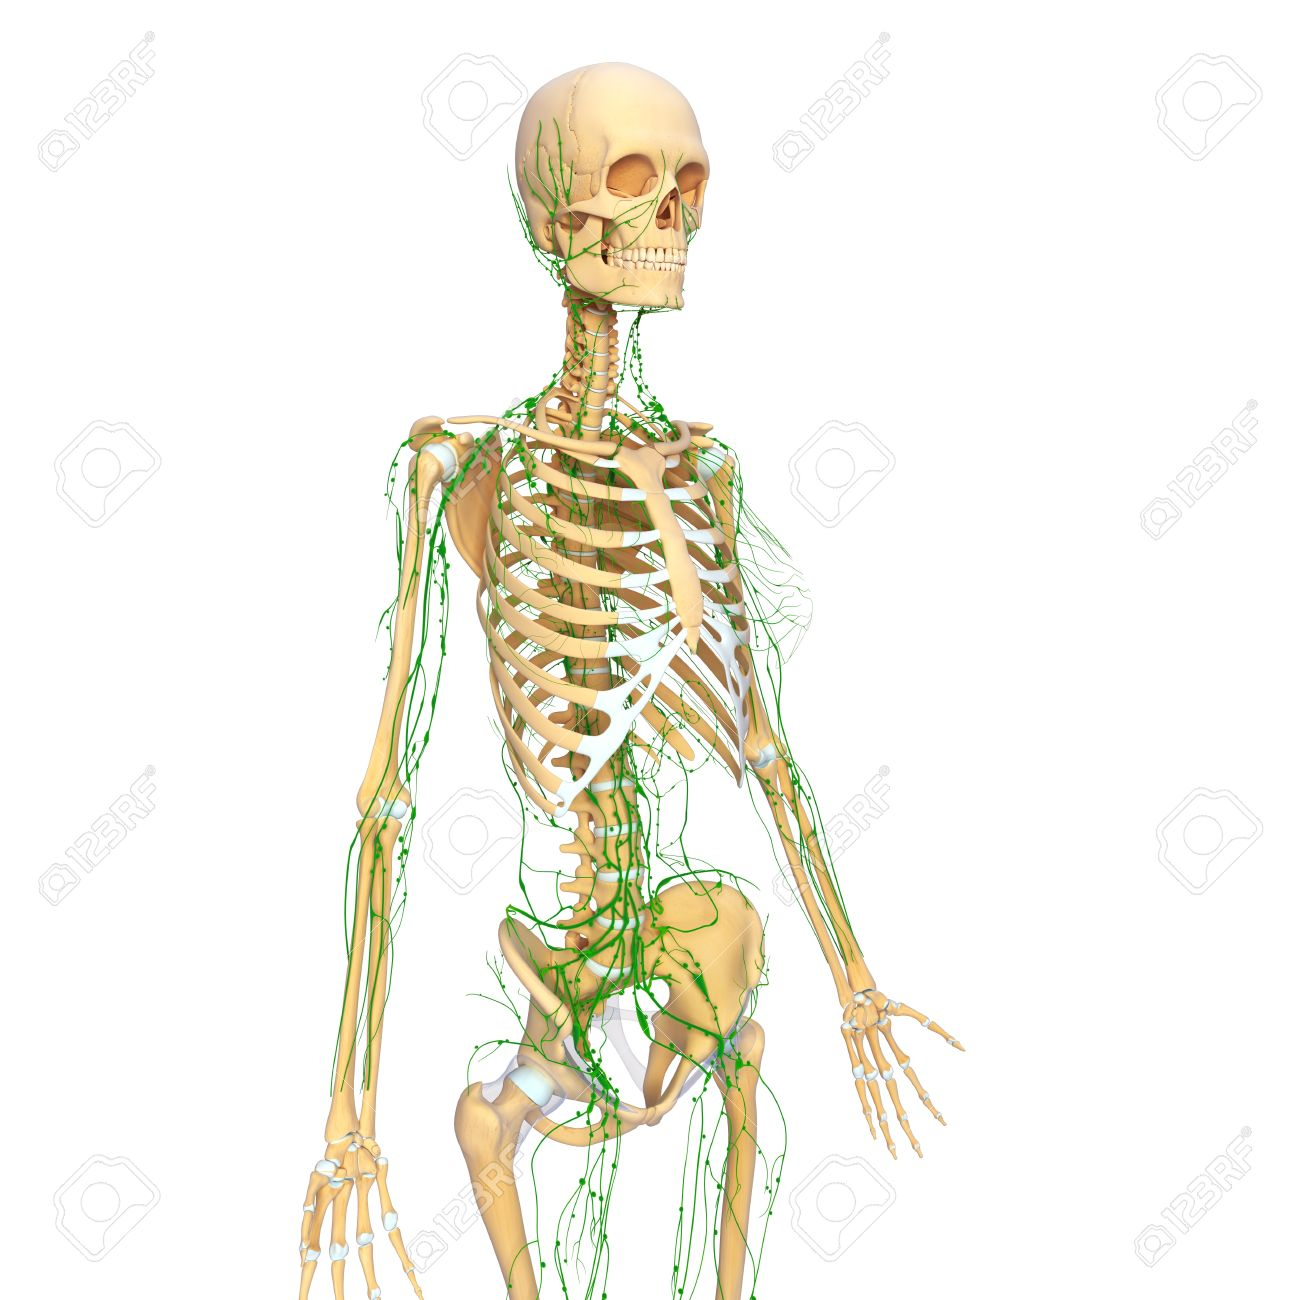 Lymphatic System Of Female Side View With Skeleton Stock Photo ...